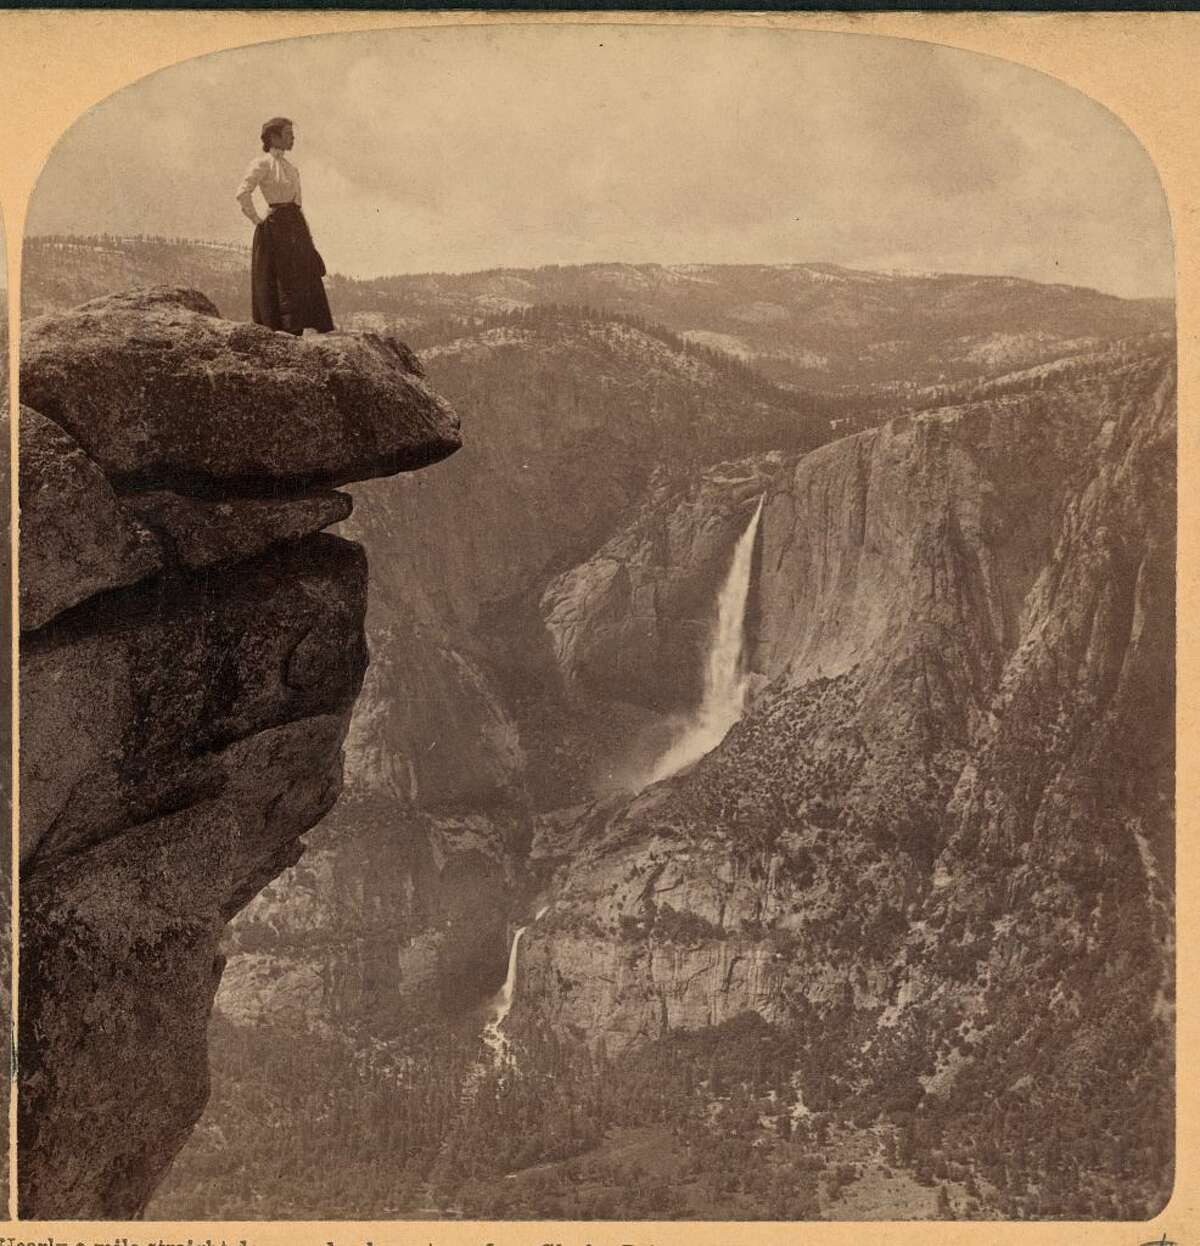 HISTORIC PHOTOS OF YOSEMITE NATIONAL PARK A woman stands on the precipice looking out onto the valley. The striking photograph was taken in 1902.